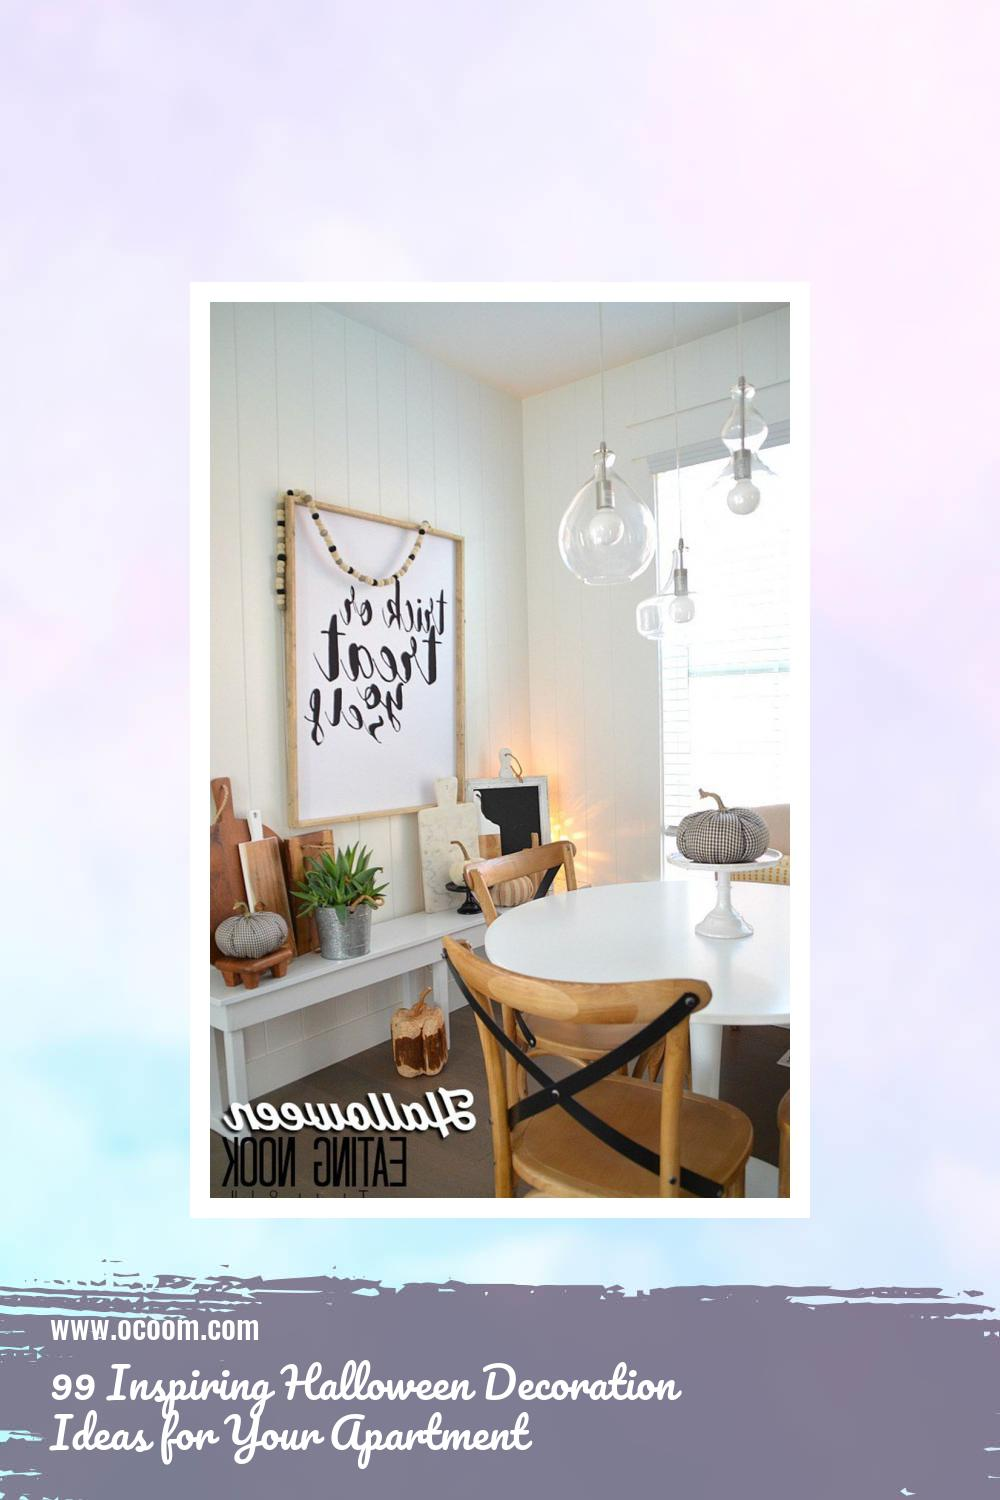 99 Inspiring Halloween Decoration Ideas for Your Apartment 60